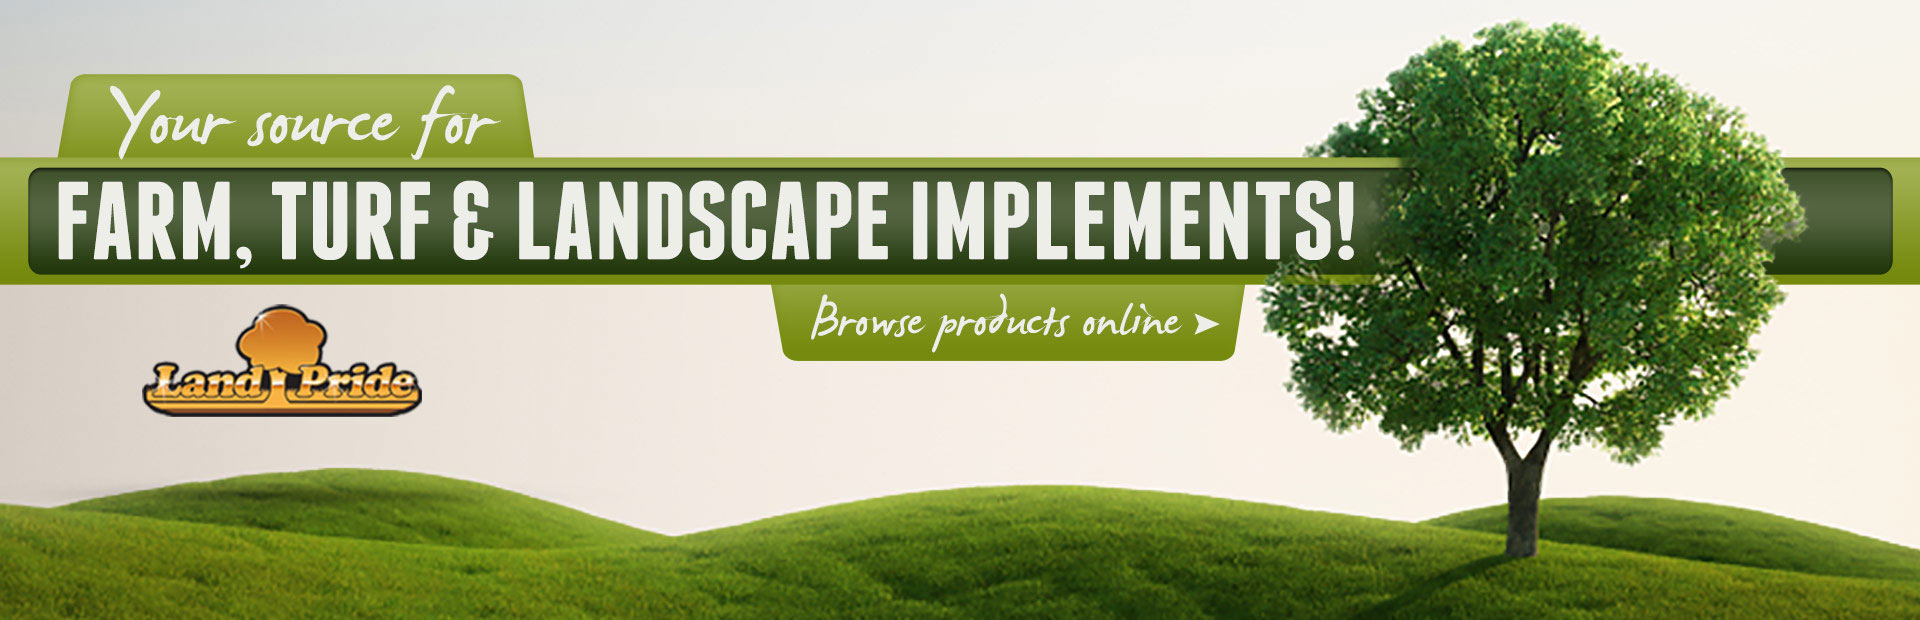 We are your source for farm, turf, and landscape implements! Click here to browse products online.